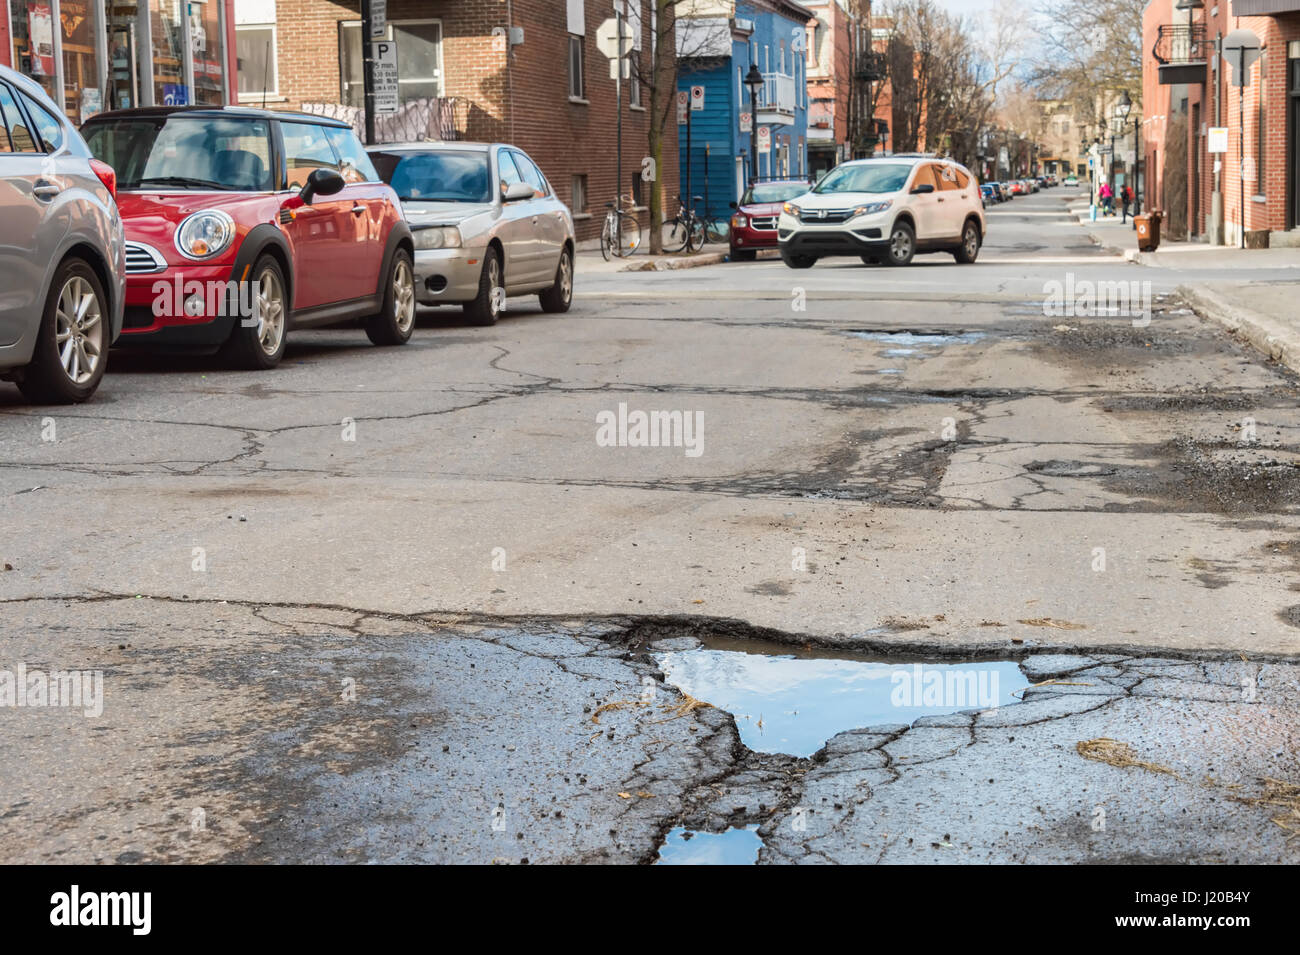 Montreal, Canada - 21 April 2017: Large unrepaired potholes on Bienville street - Stock Image